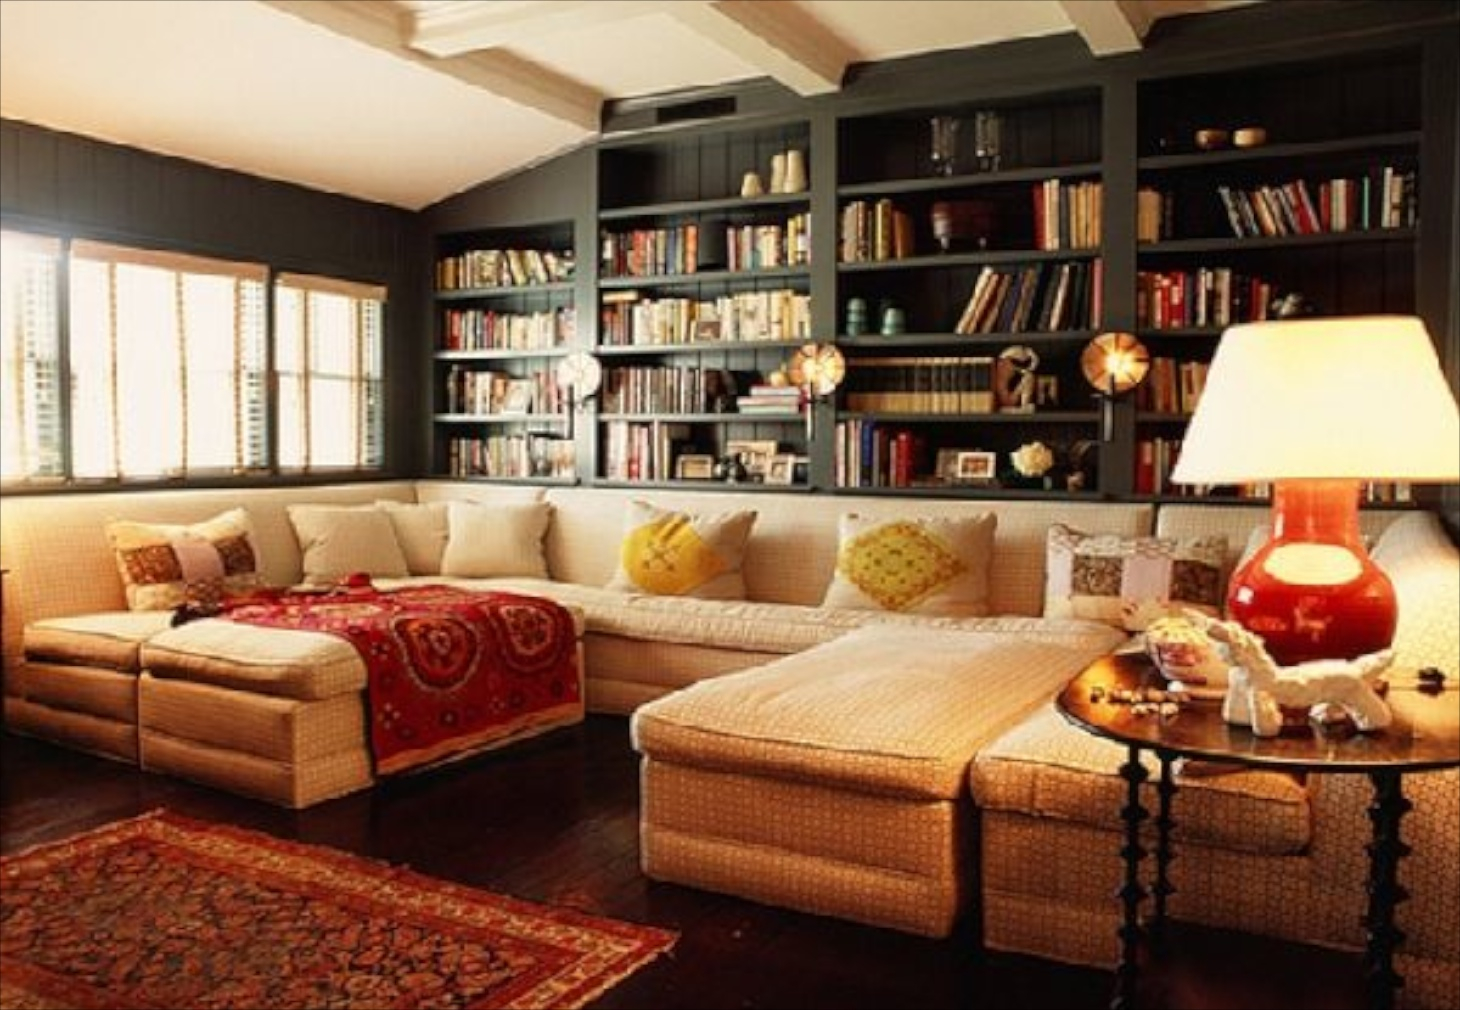 Elite 23_Sofas-And-Bookcase-Ideas-In-Cozy-Living-Room-Design-With-Mixture intended for Cozy Living Room Ideas